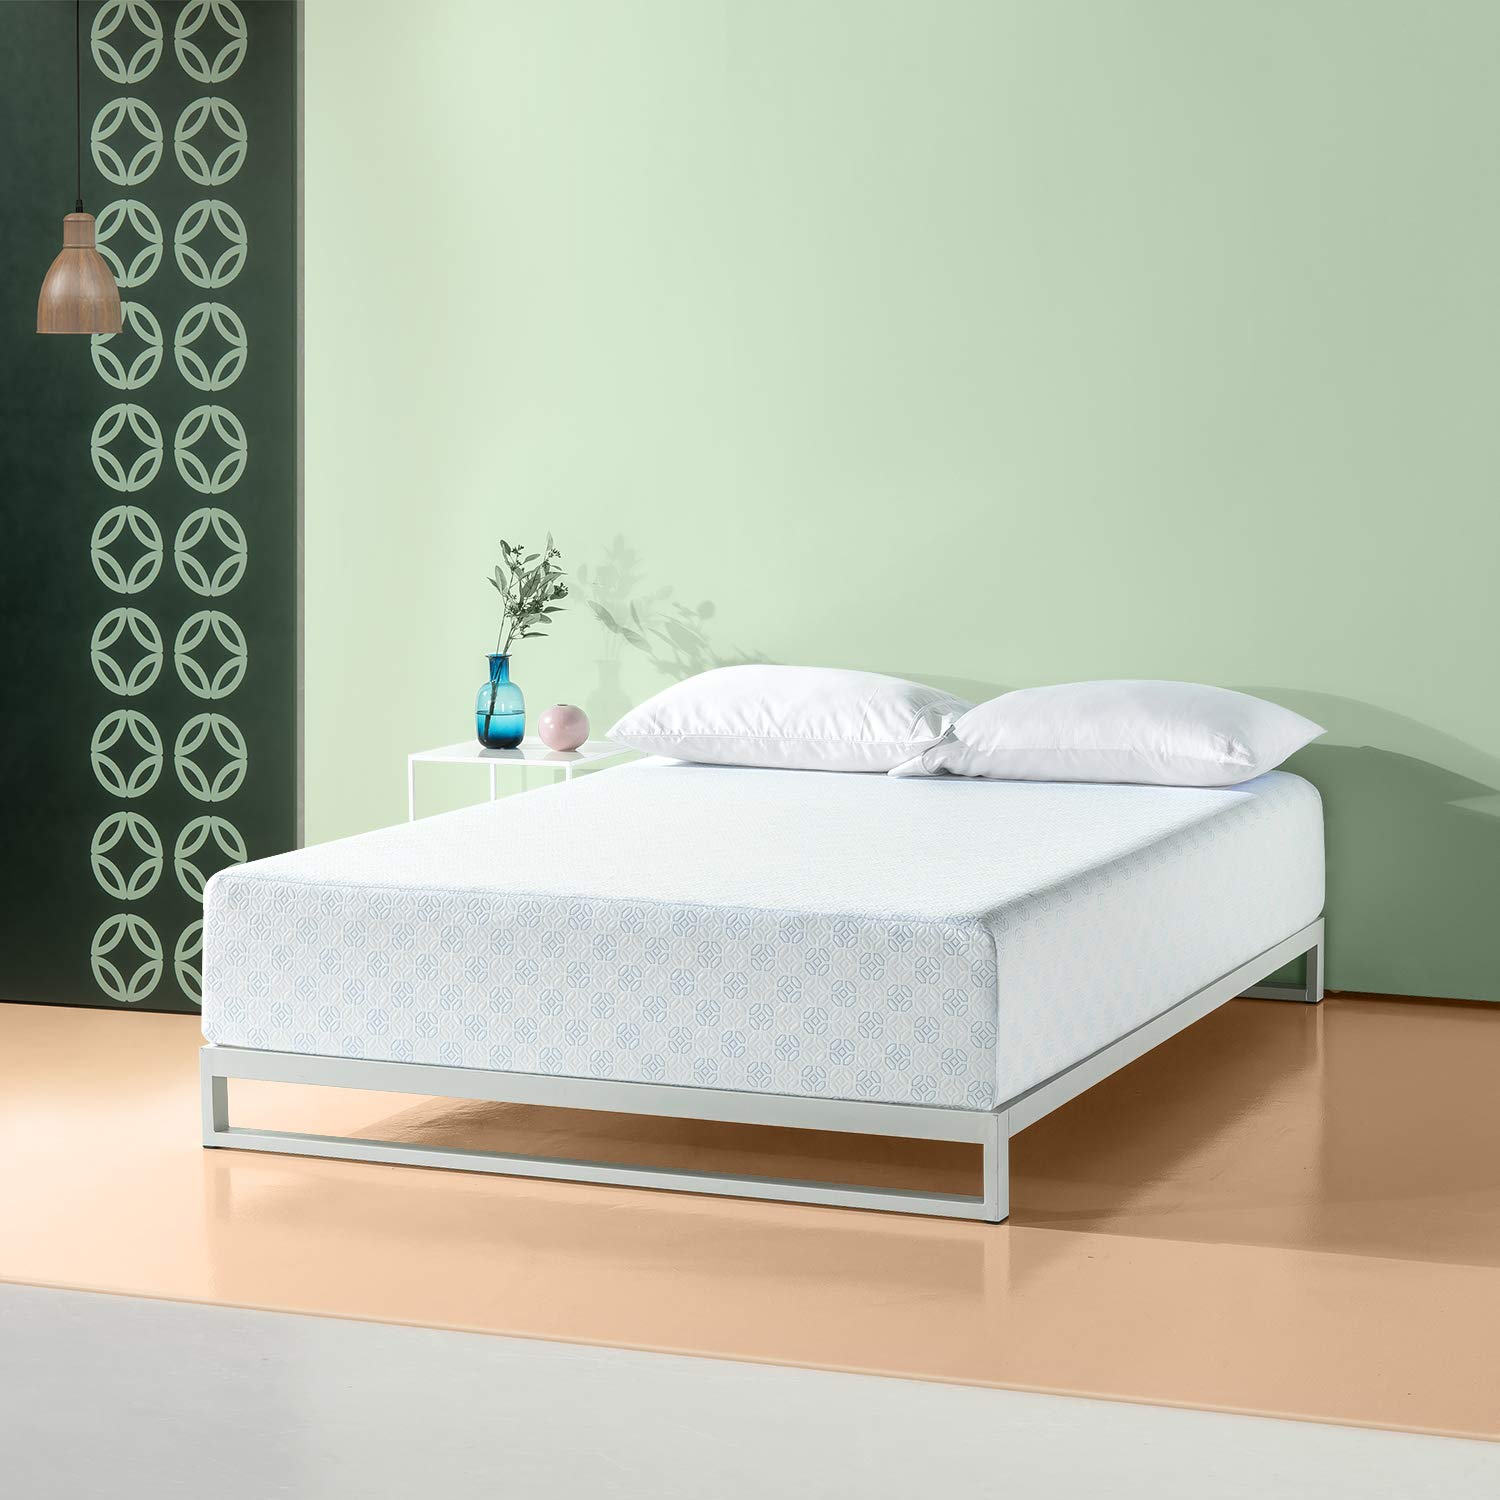 Best Memory Foam Mattress Reviews 5